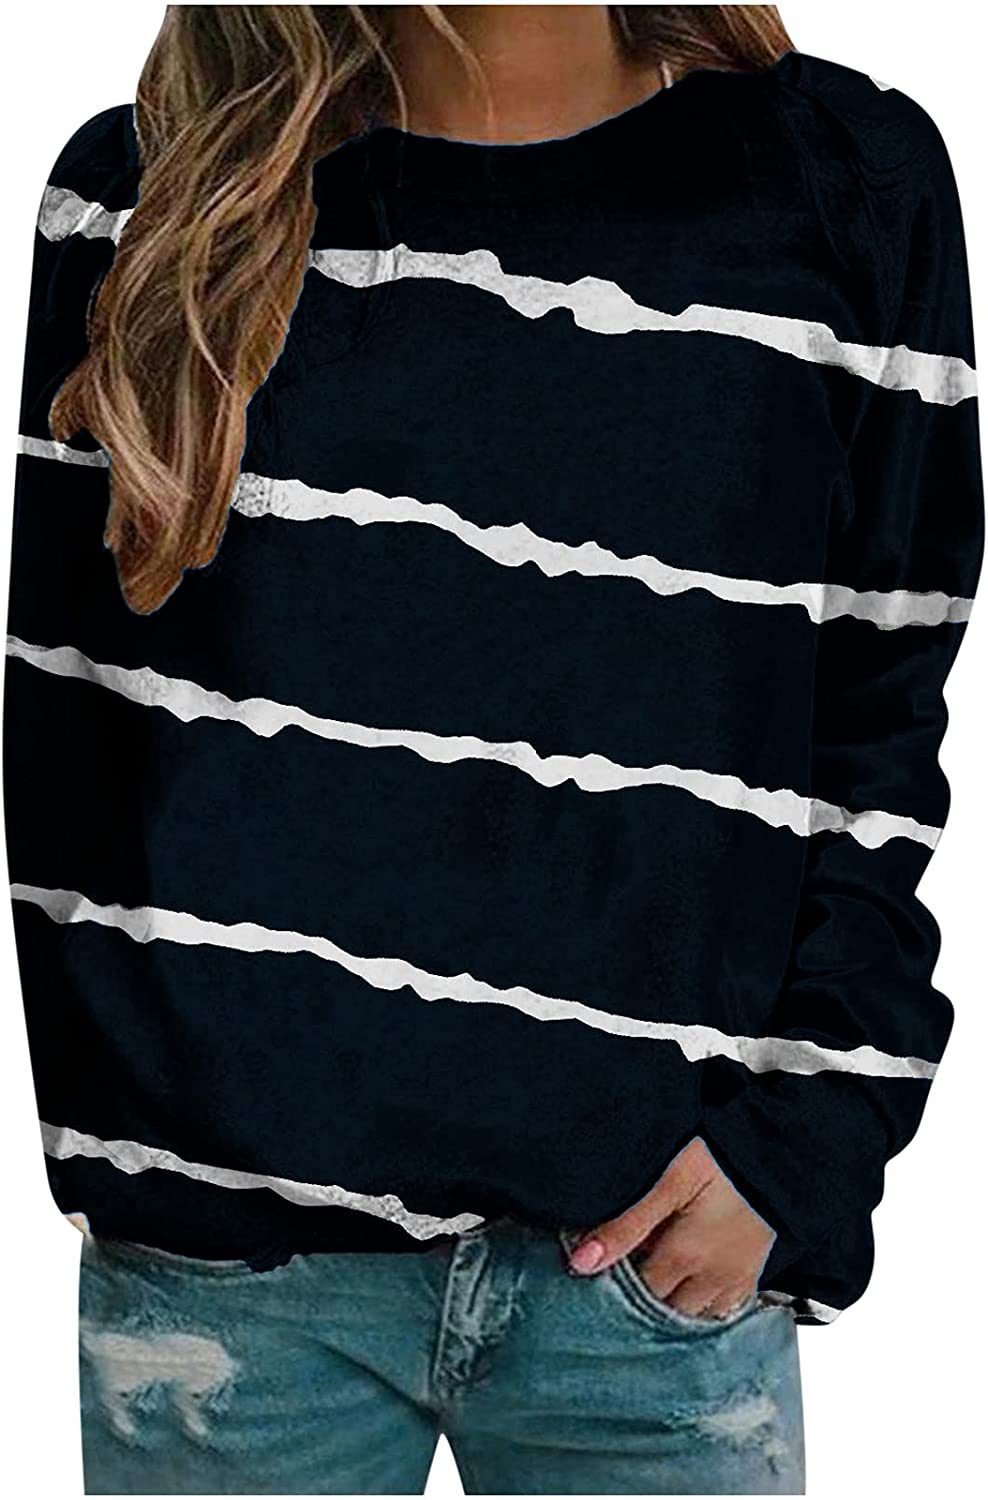 Womens Long Sleeve Tops, Women's Striped Sweatshirts Crew Neck Pullover Casual Long Sleeve Blouse Tops Comfy Shirts